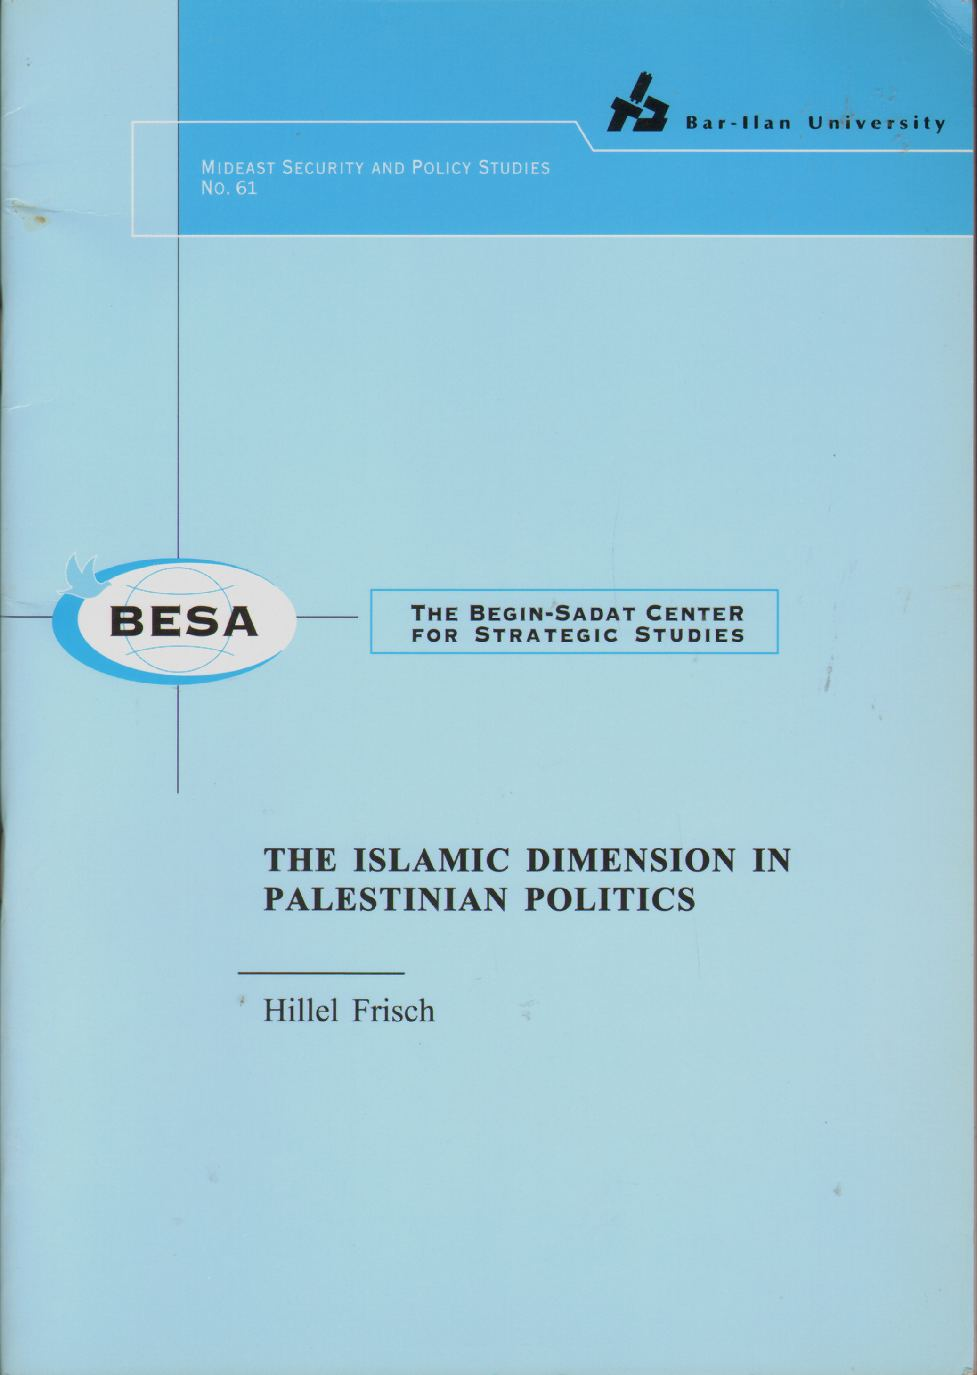 Image for THE ISLAMIC DIMENSION IN PALESTINIAN POLITICS Contains Nationalizing a Universal Text: The Quran in Arafat's Rhetoric and Has the Israeli-Palestinian Conflict Become Islamic?